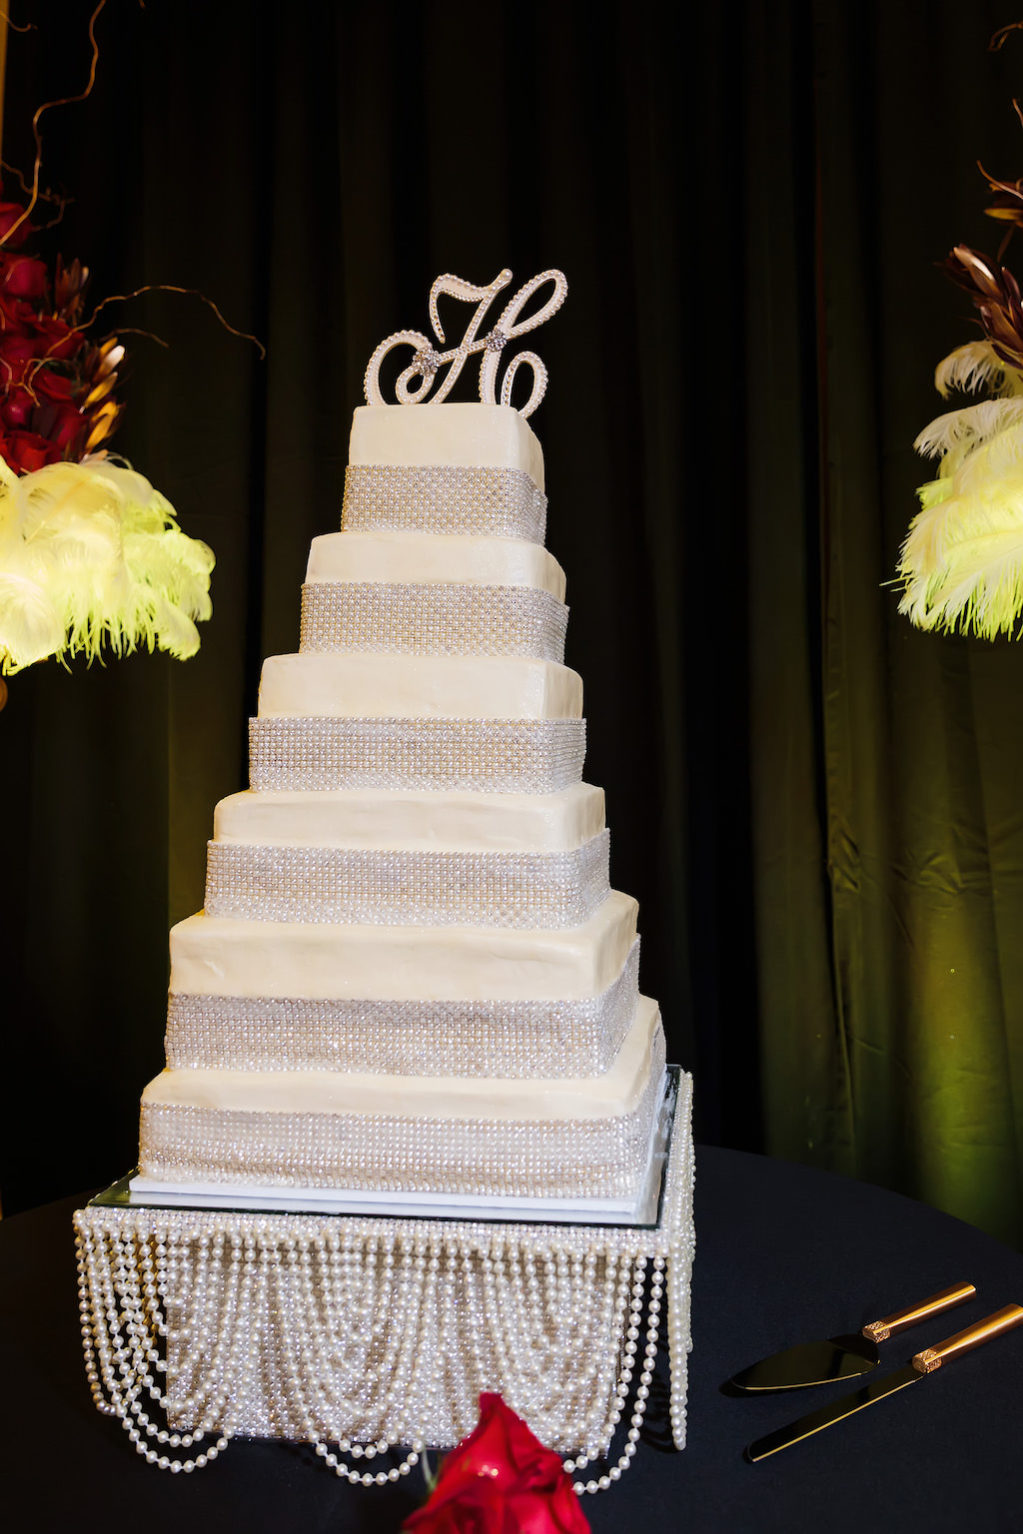 Six Tier Square Wedding Cake with Rhinestones and Monogrammed Cake Topper